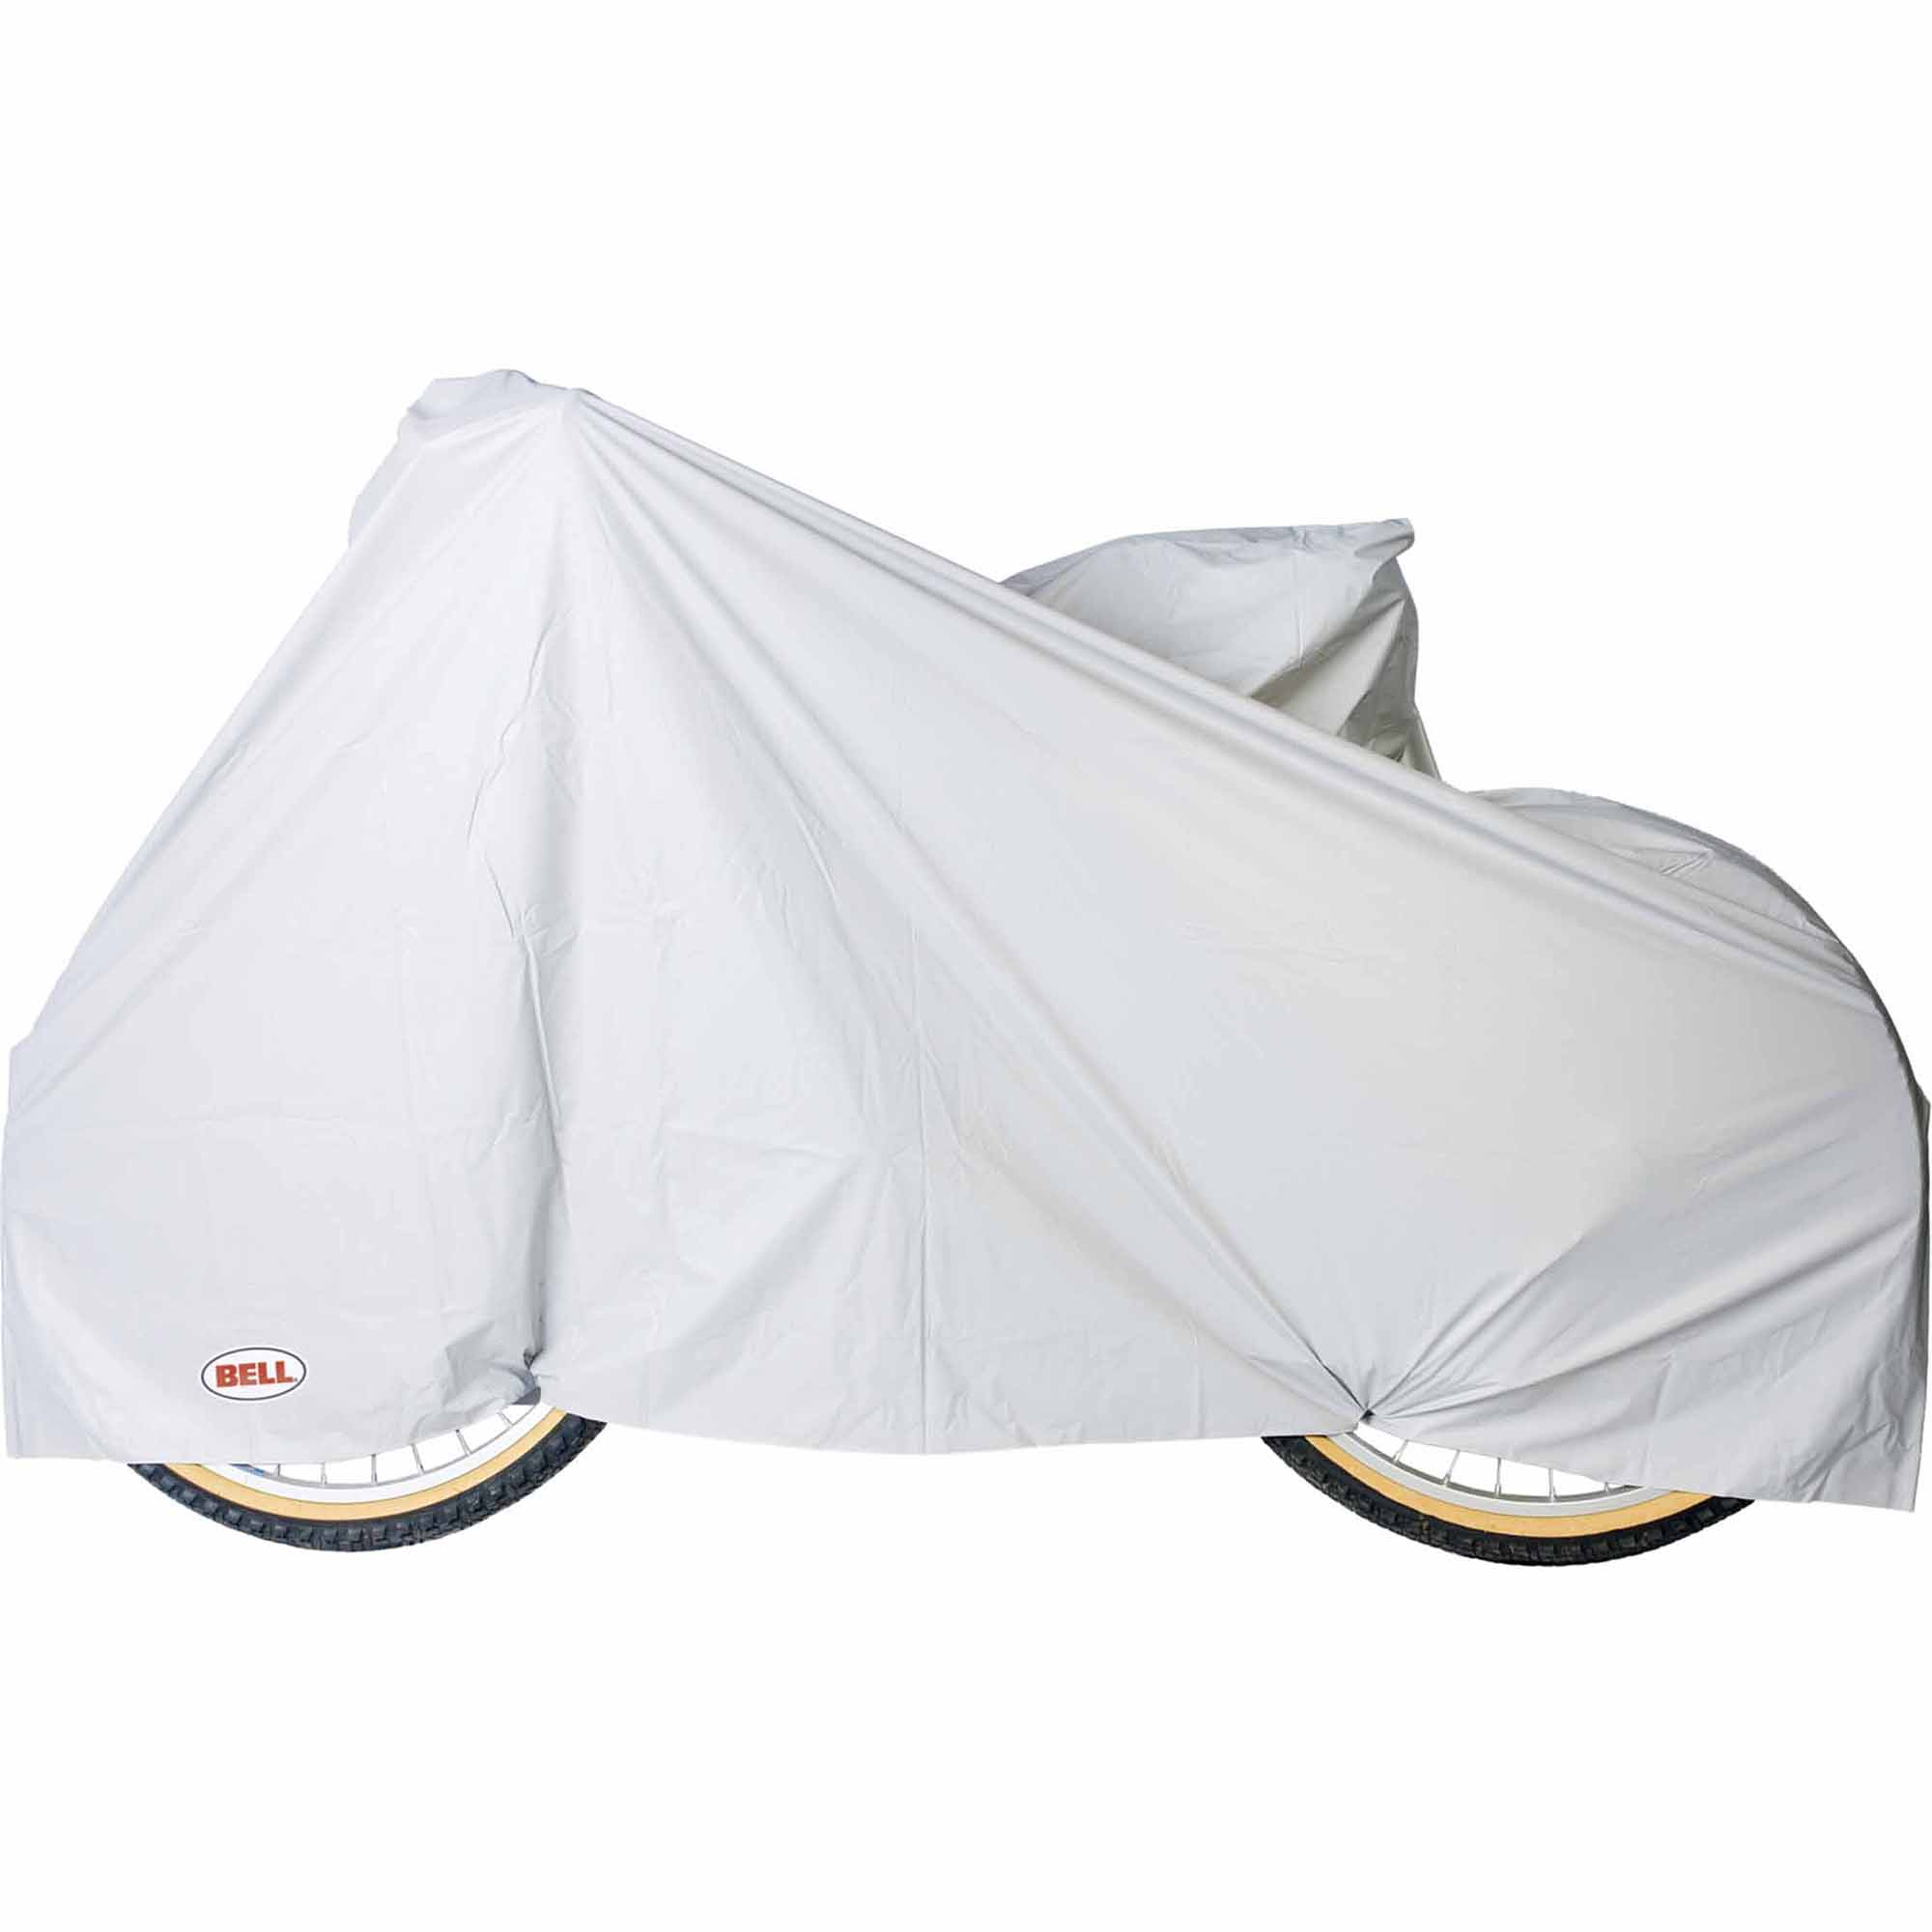 Bell Sports Velocover 300 Bike Cover, Gray